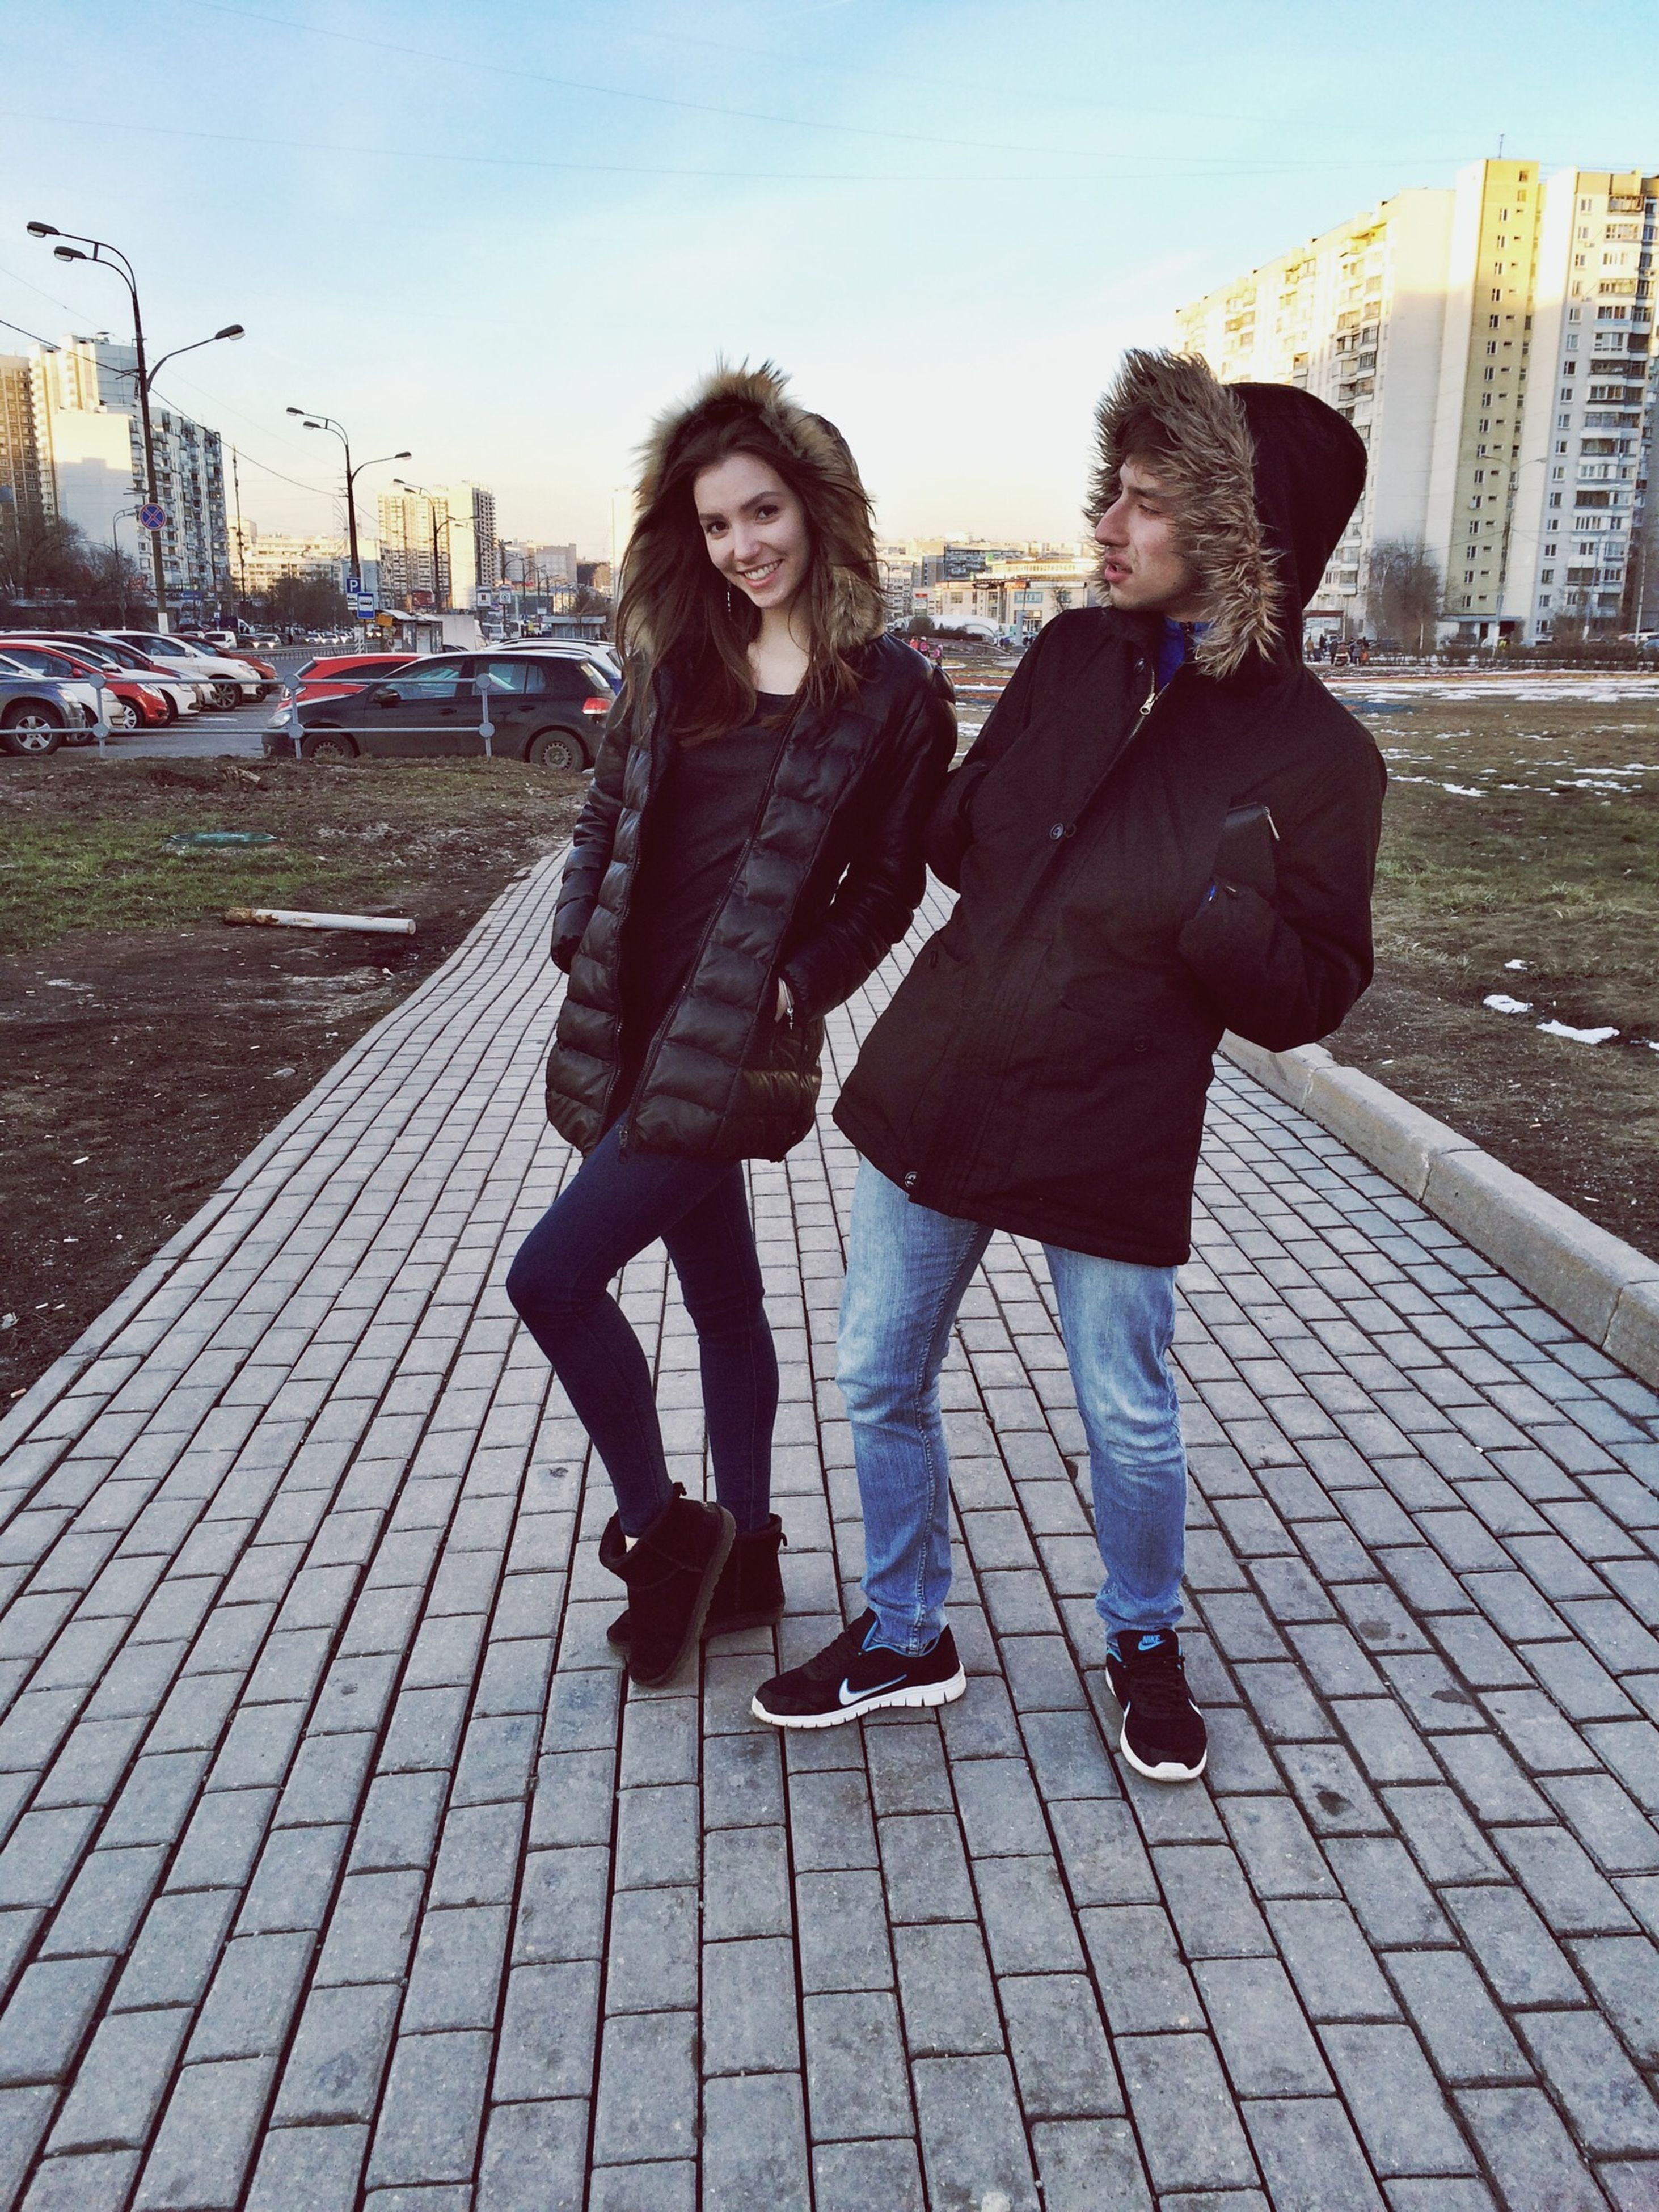 lifestyles, full length, casual clothing, leisure activity, young adult, person, standing, front view, building exterior, young women, city, looking at camera, built structure, portrait, architecture, warm clothing, street